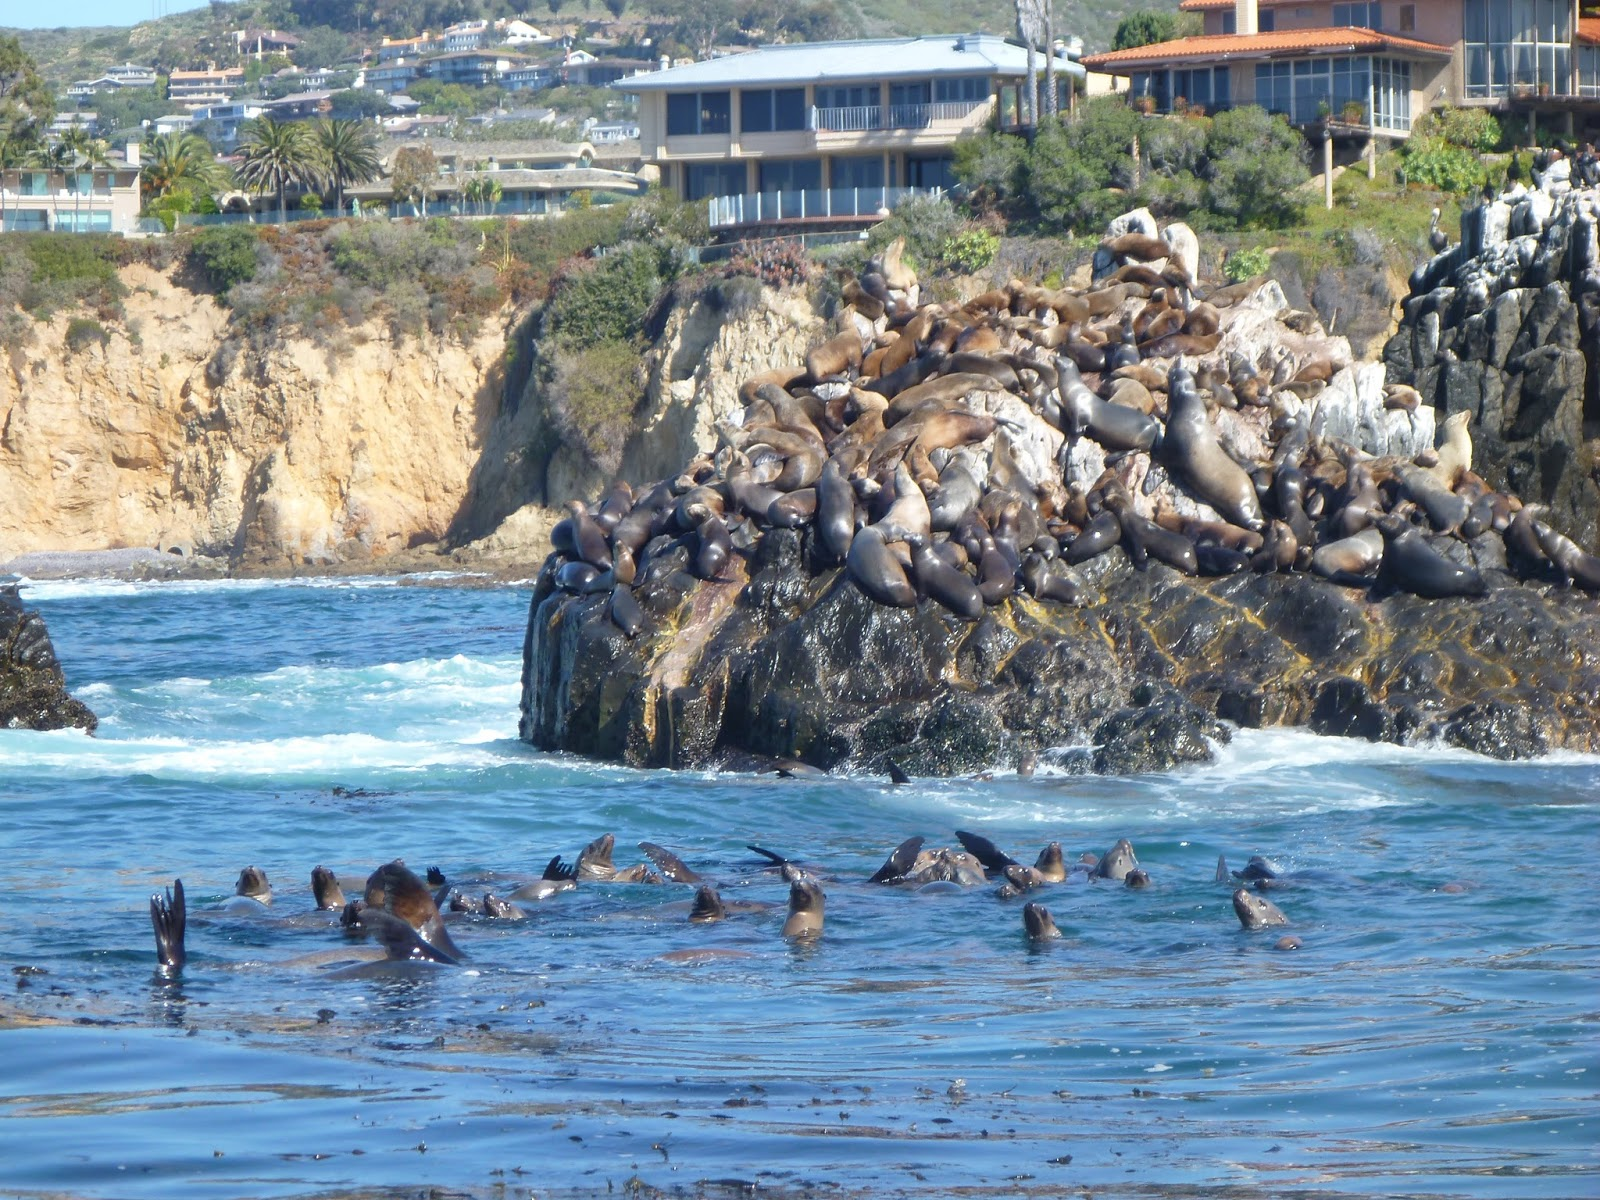 Laguna Beach California Sea Lions In The Water And On Land Taken March 10 2017 From A Paddle Board Few Hundred Yards Offs With An Older